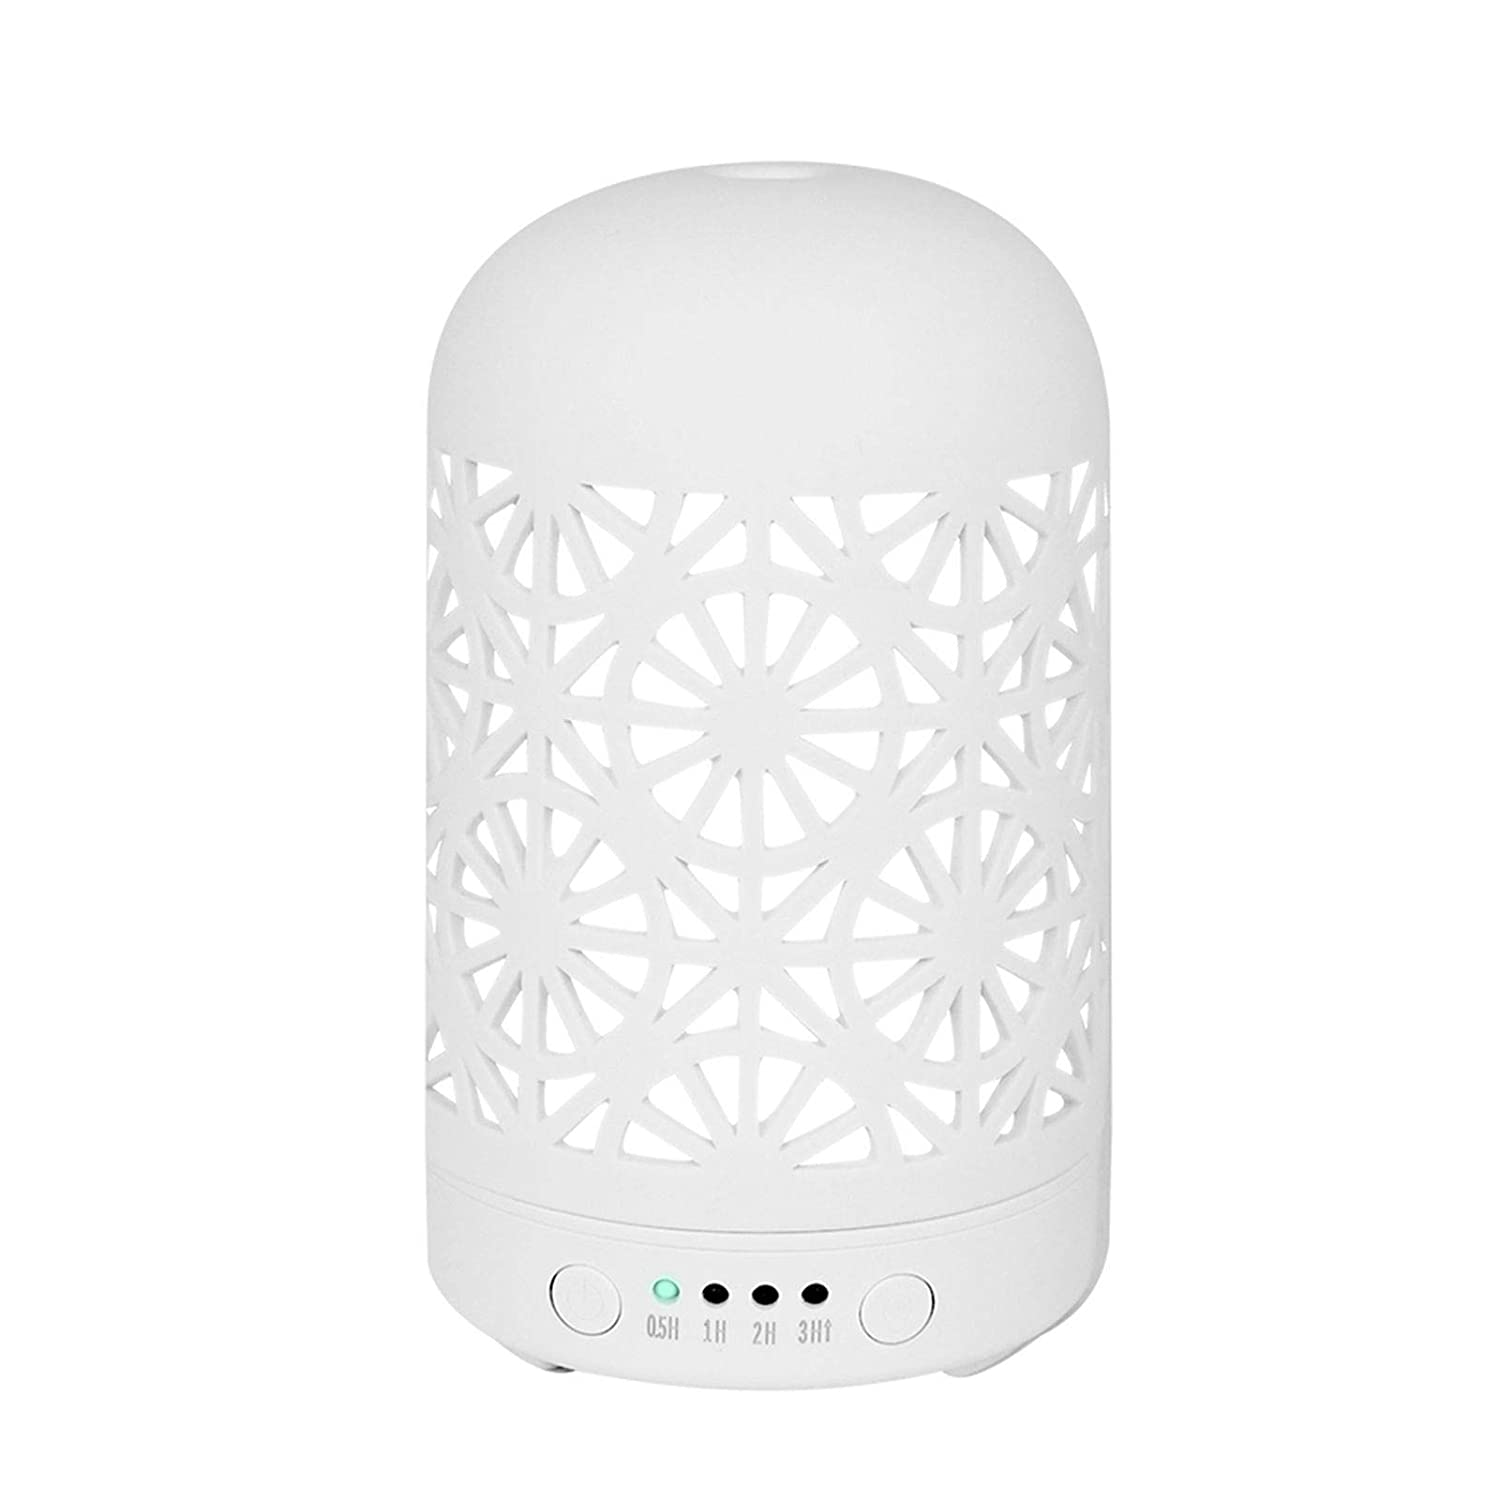 HOMNAS Essential Oil Diffuser Upgraded Today's only Ceramic 100ML Diffusers Discount is also underway